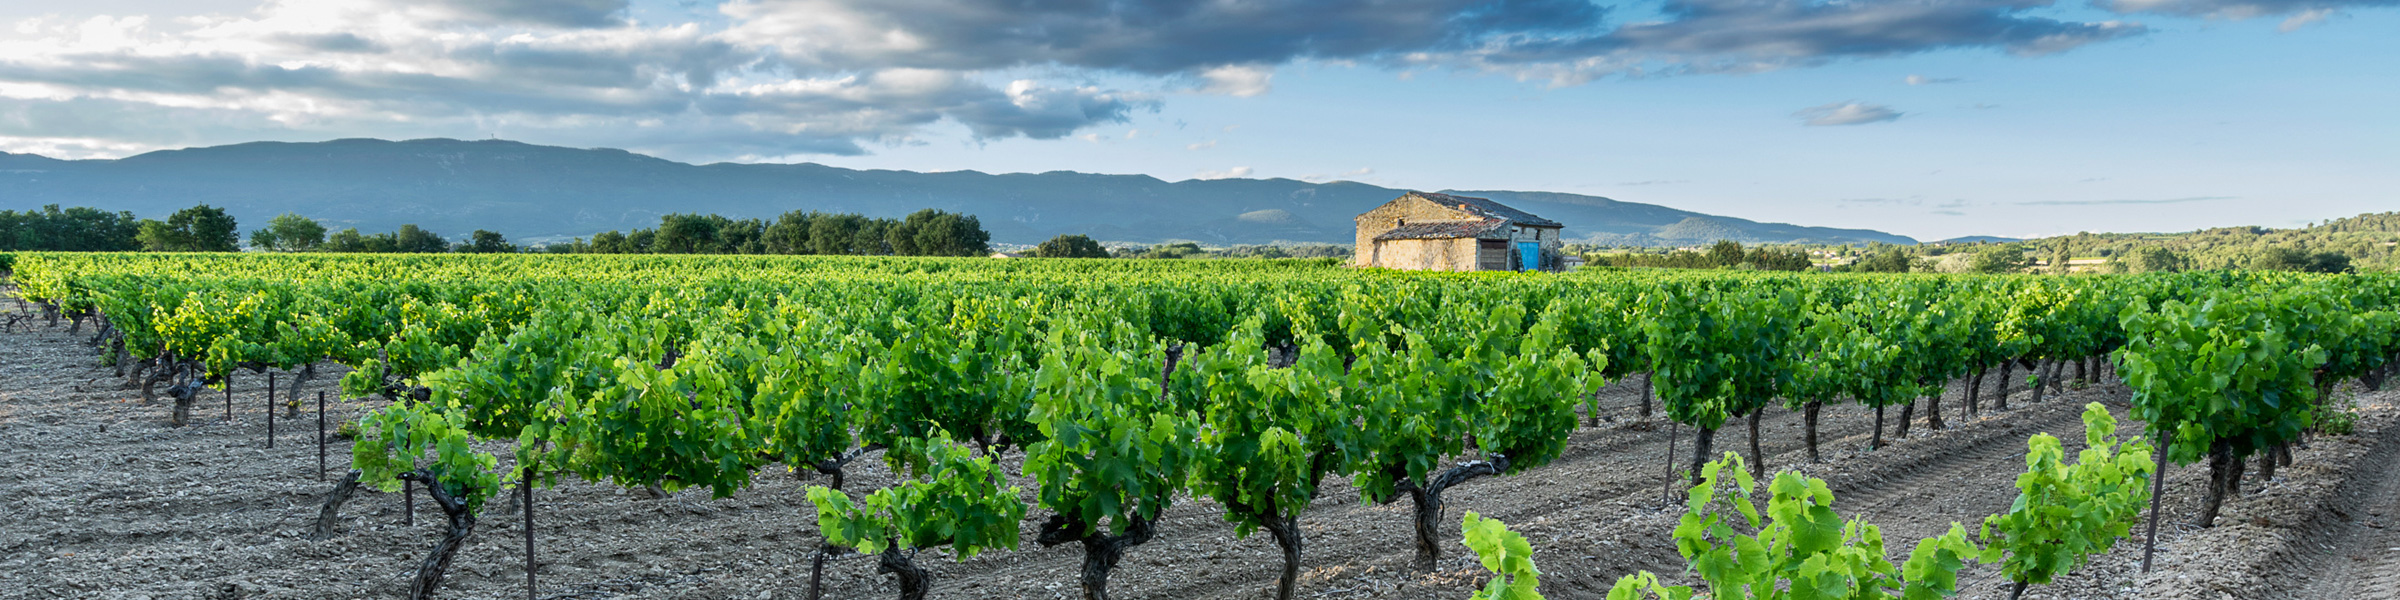 Vineyard in the Luberon Provence